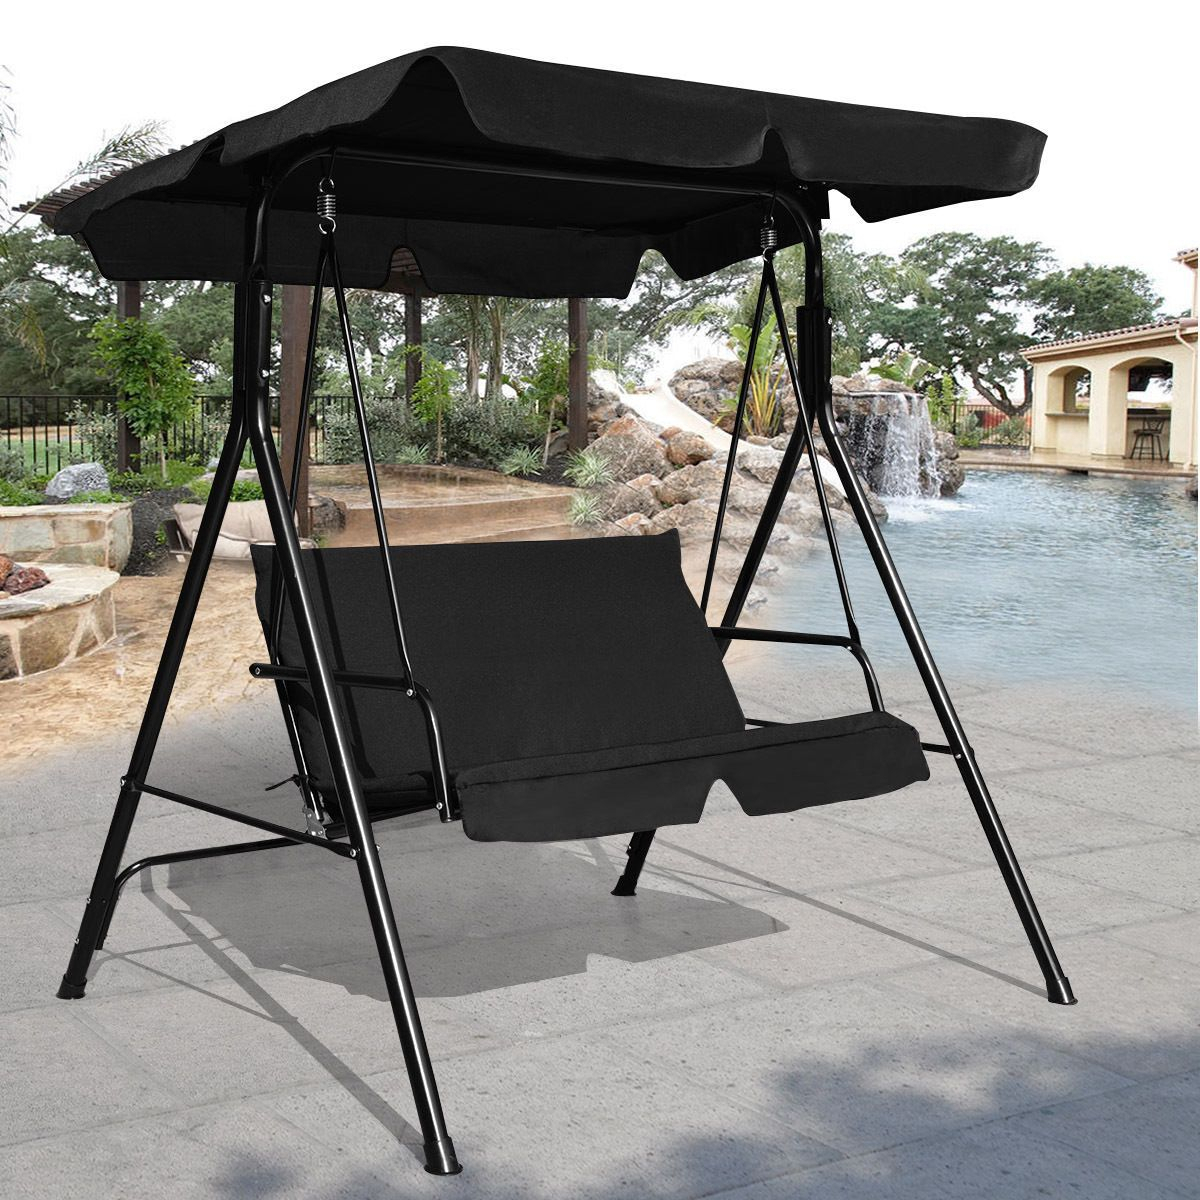 Love Seat Patio Canopy Swing Black | Patio Loveseat, Porch In 2 Person Hammock Porch Swing Patio Outdoor Hanging Loveseat Canopy Glider Swings (View 24 of 25)